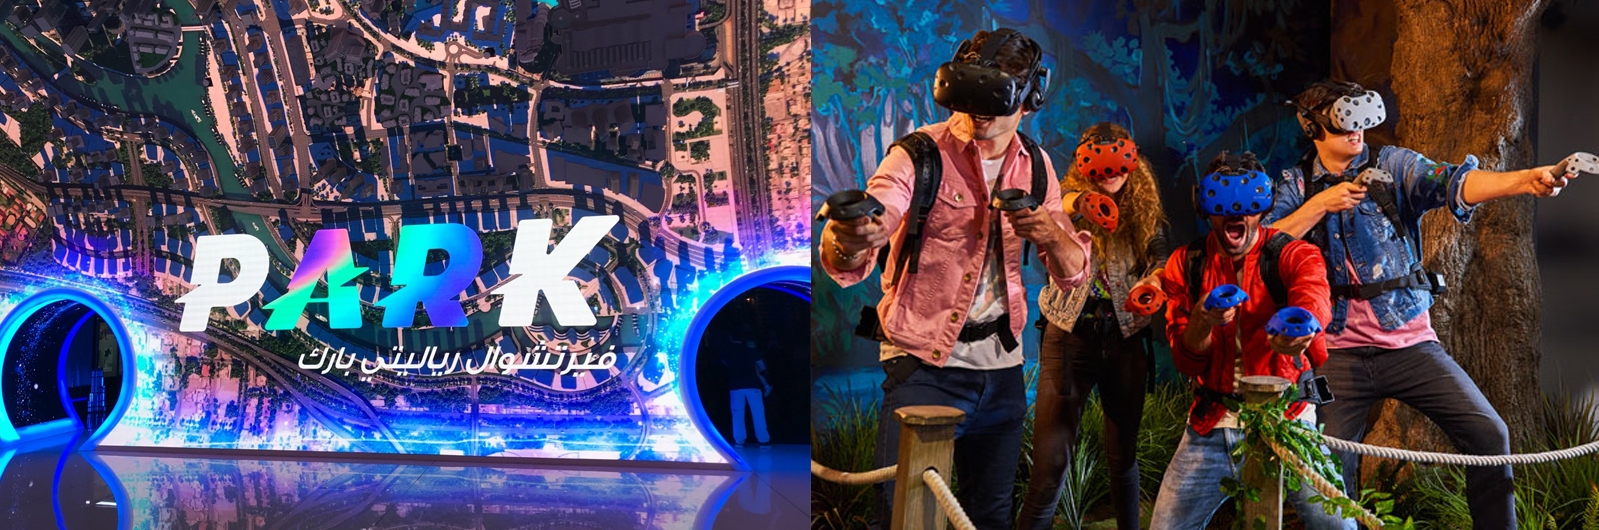 Dubai-Virtual-Reality-Park